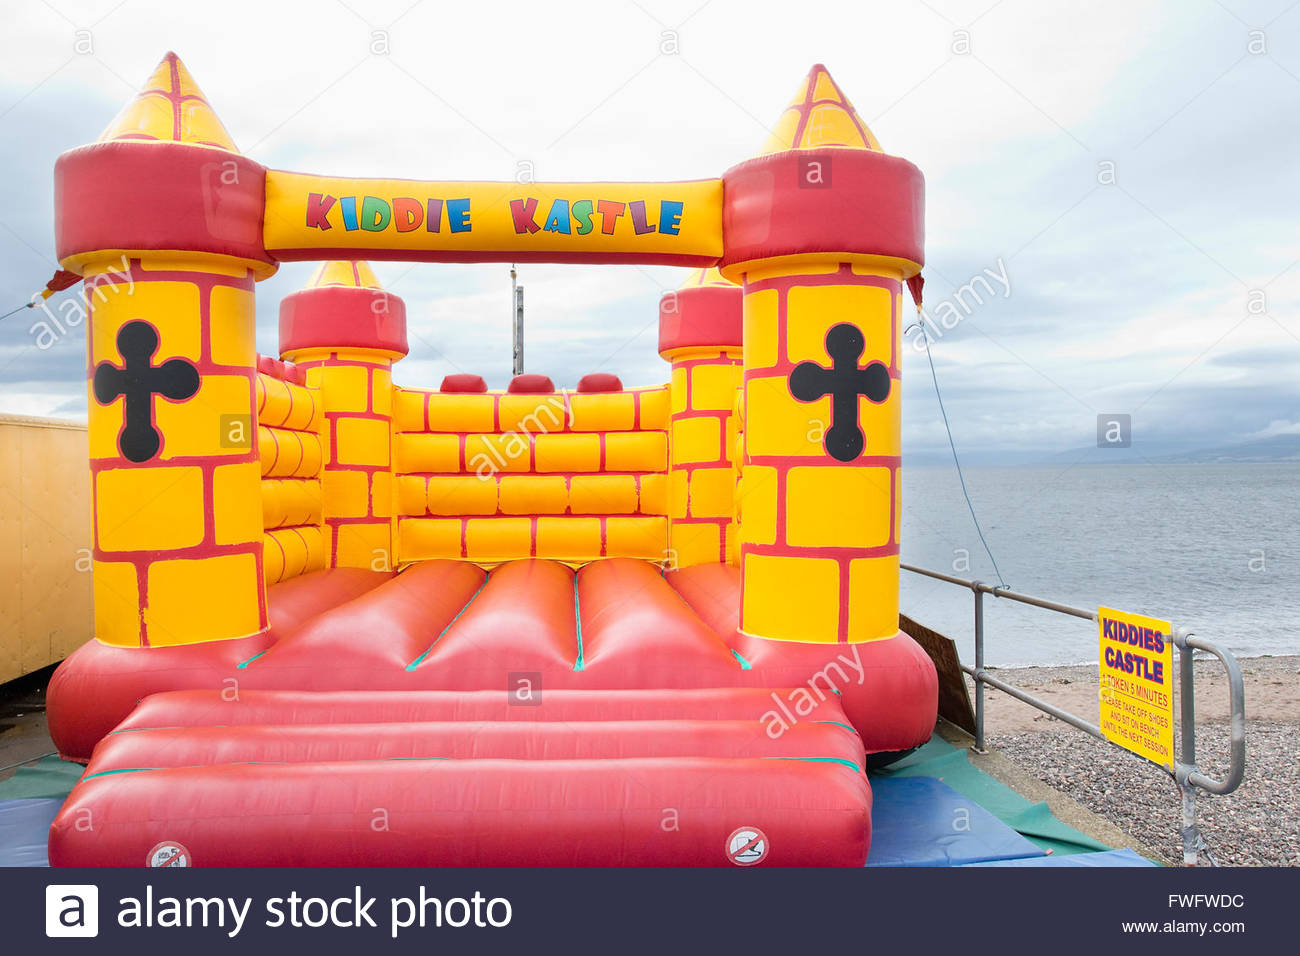 Empty colorful bouncy castle on shore - Stock Image